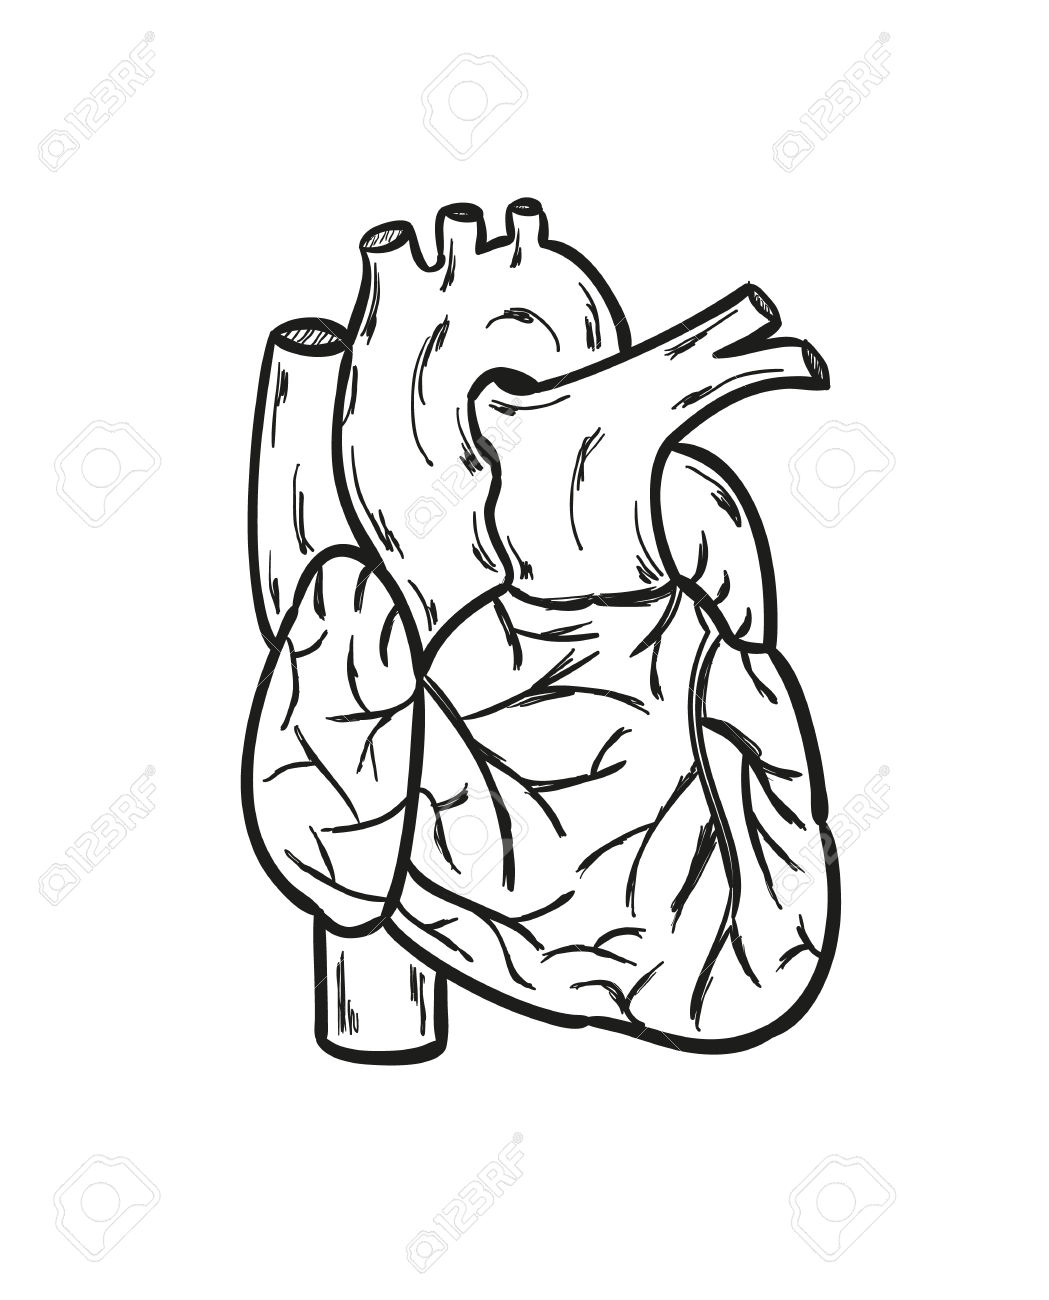 Human Heart Black And White With Lables Human Heart Clip Art.